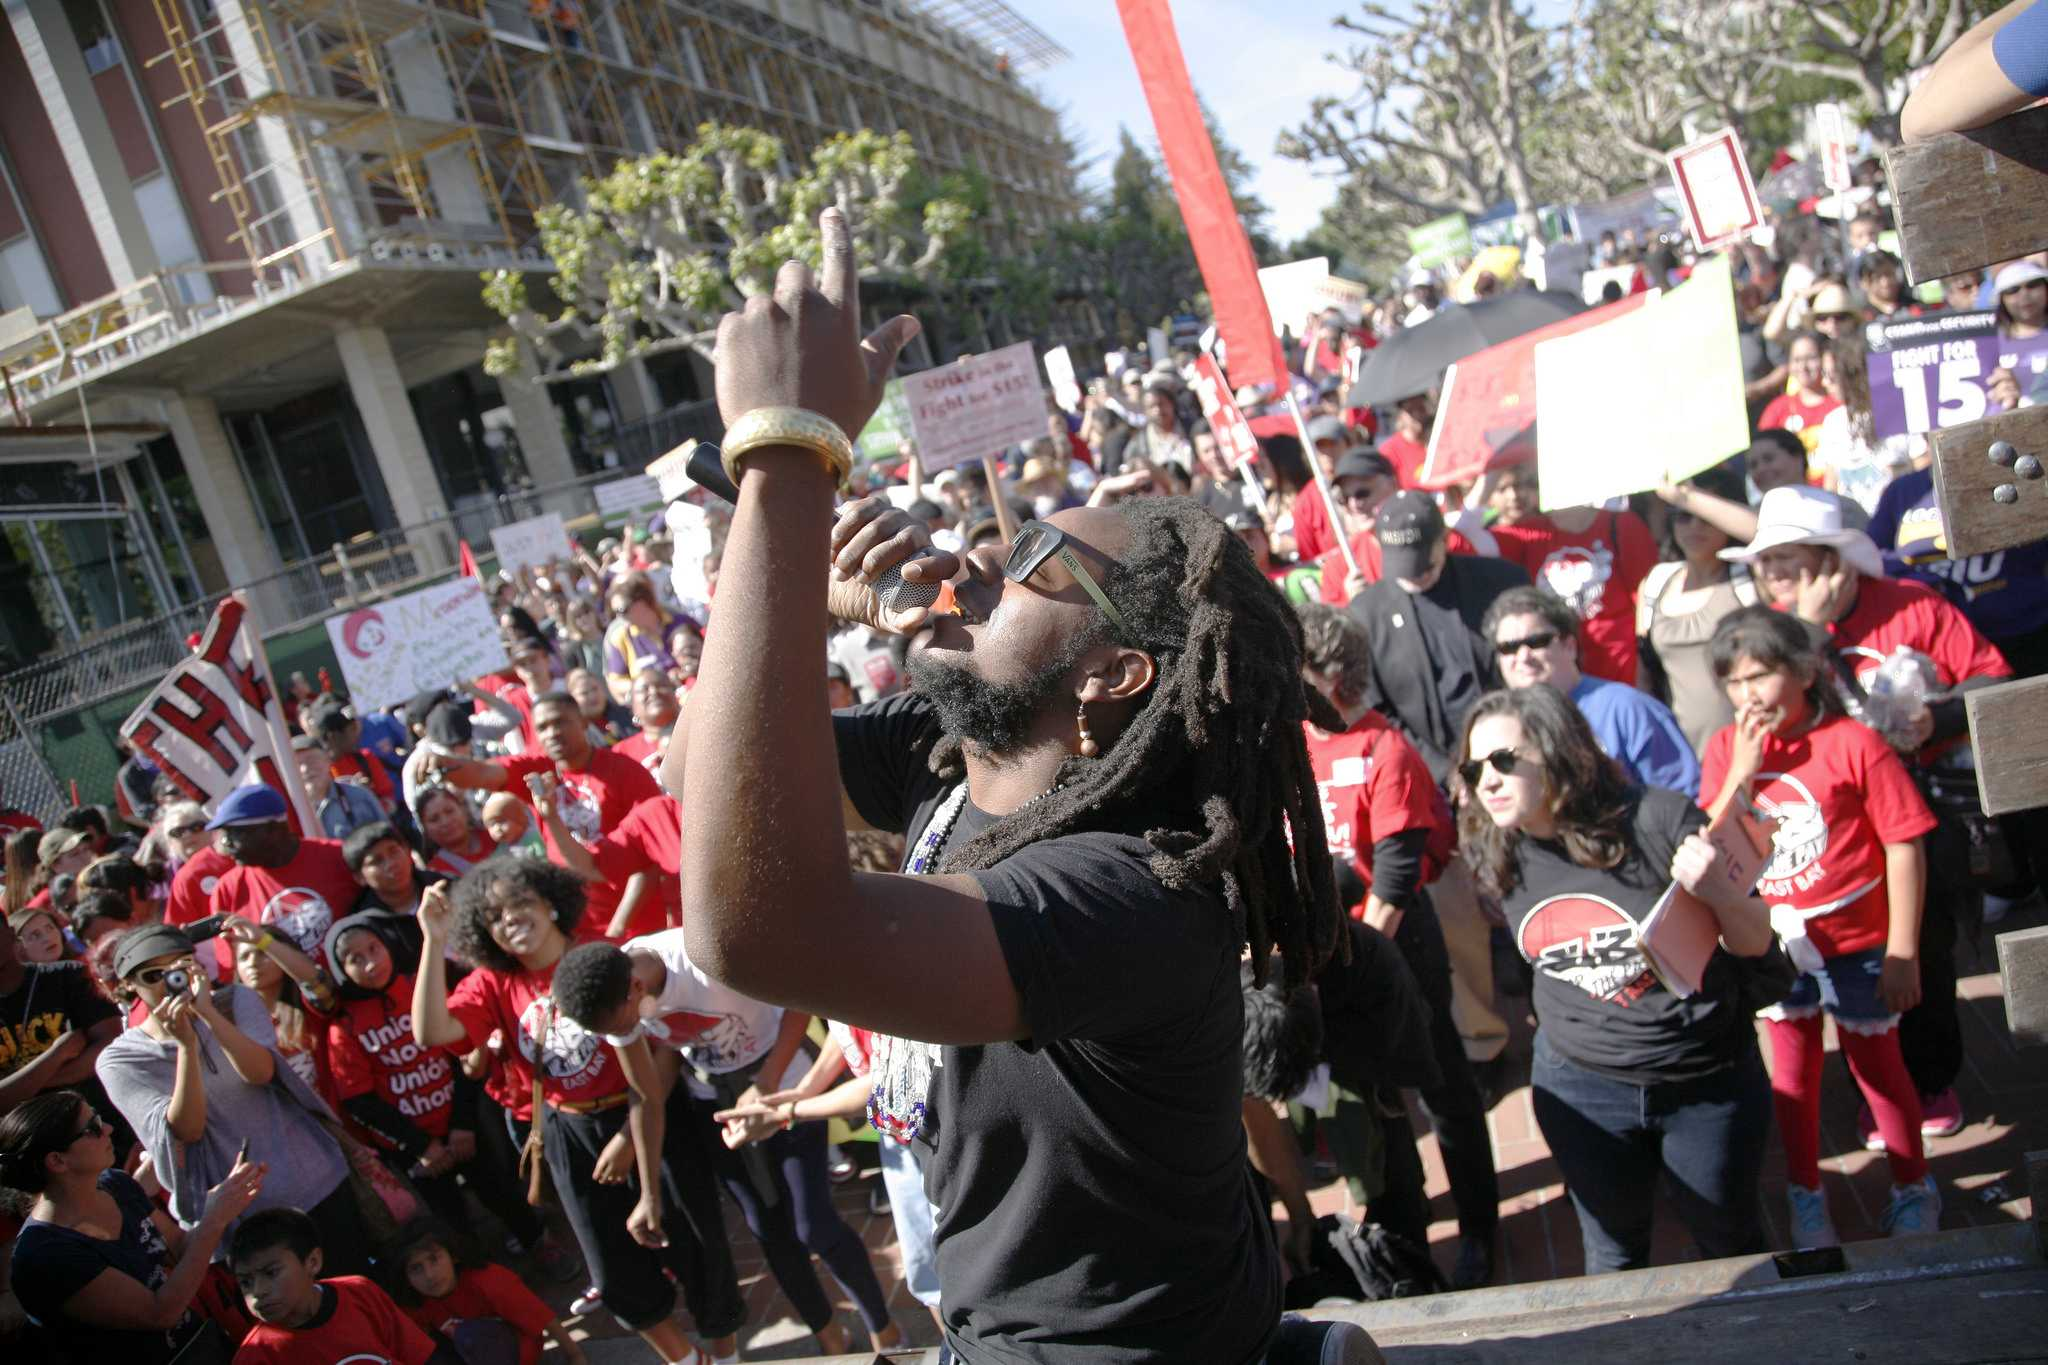 Najee Amaranth, of the The Oakland Mind, performs before hundreds of demonstrators rallying for a $15 minimum wage Wed. April 15, 2015. (Martin Bustamante / Xpress)